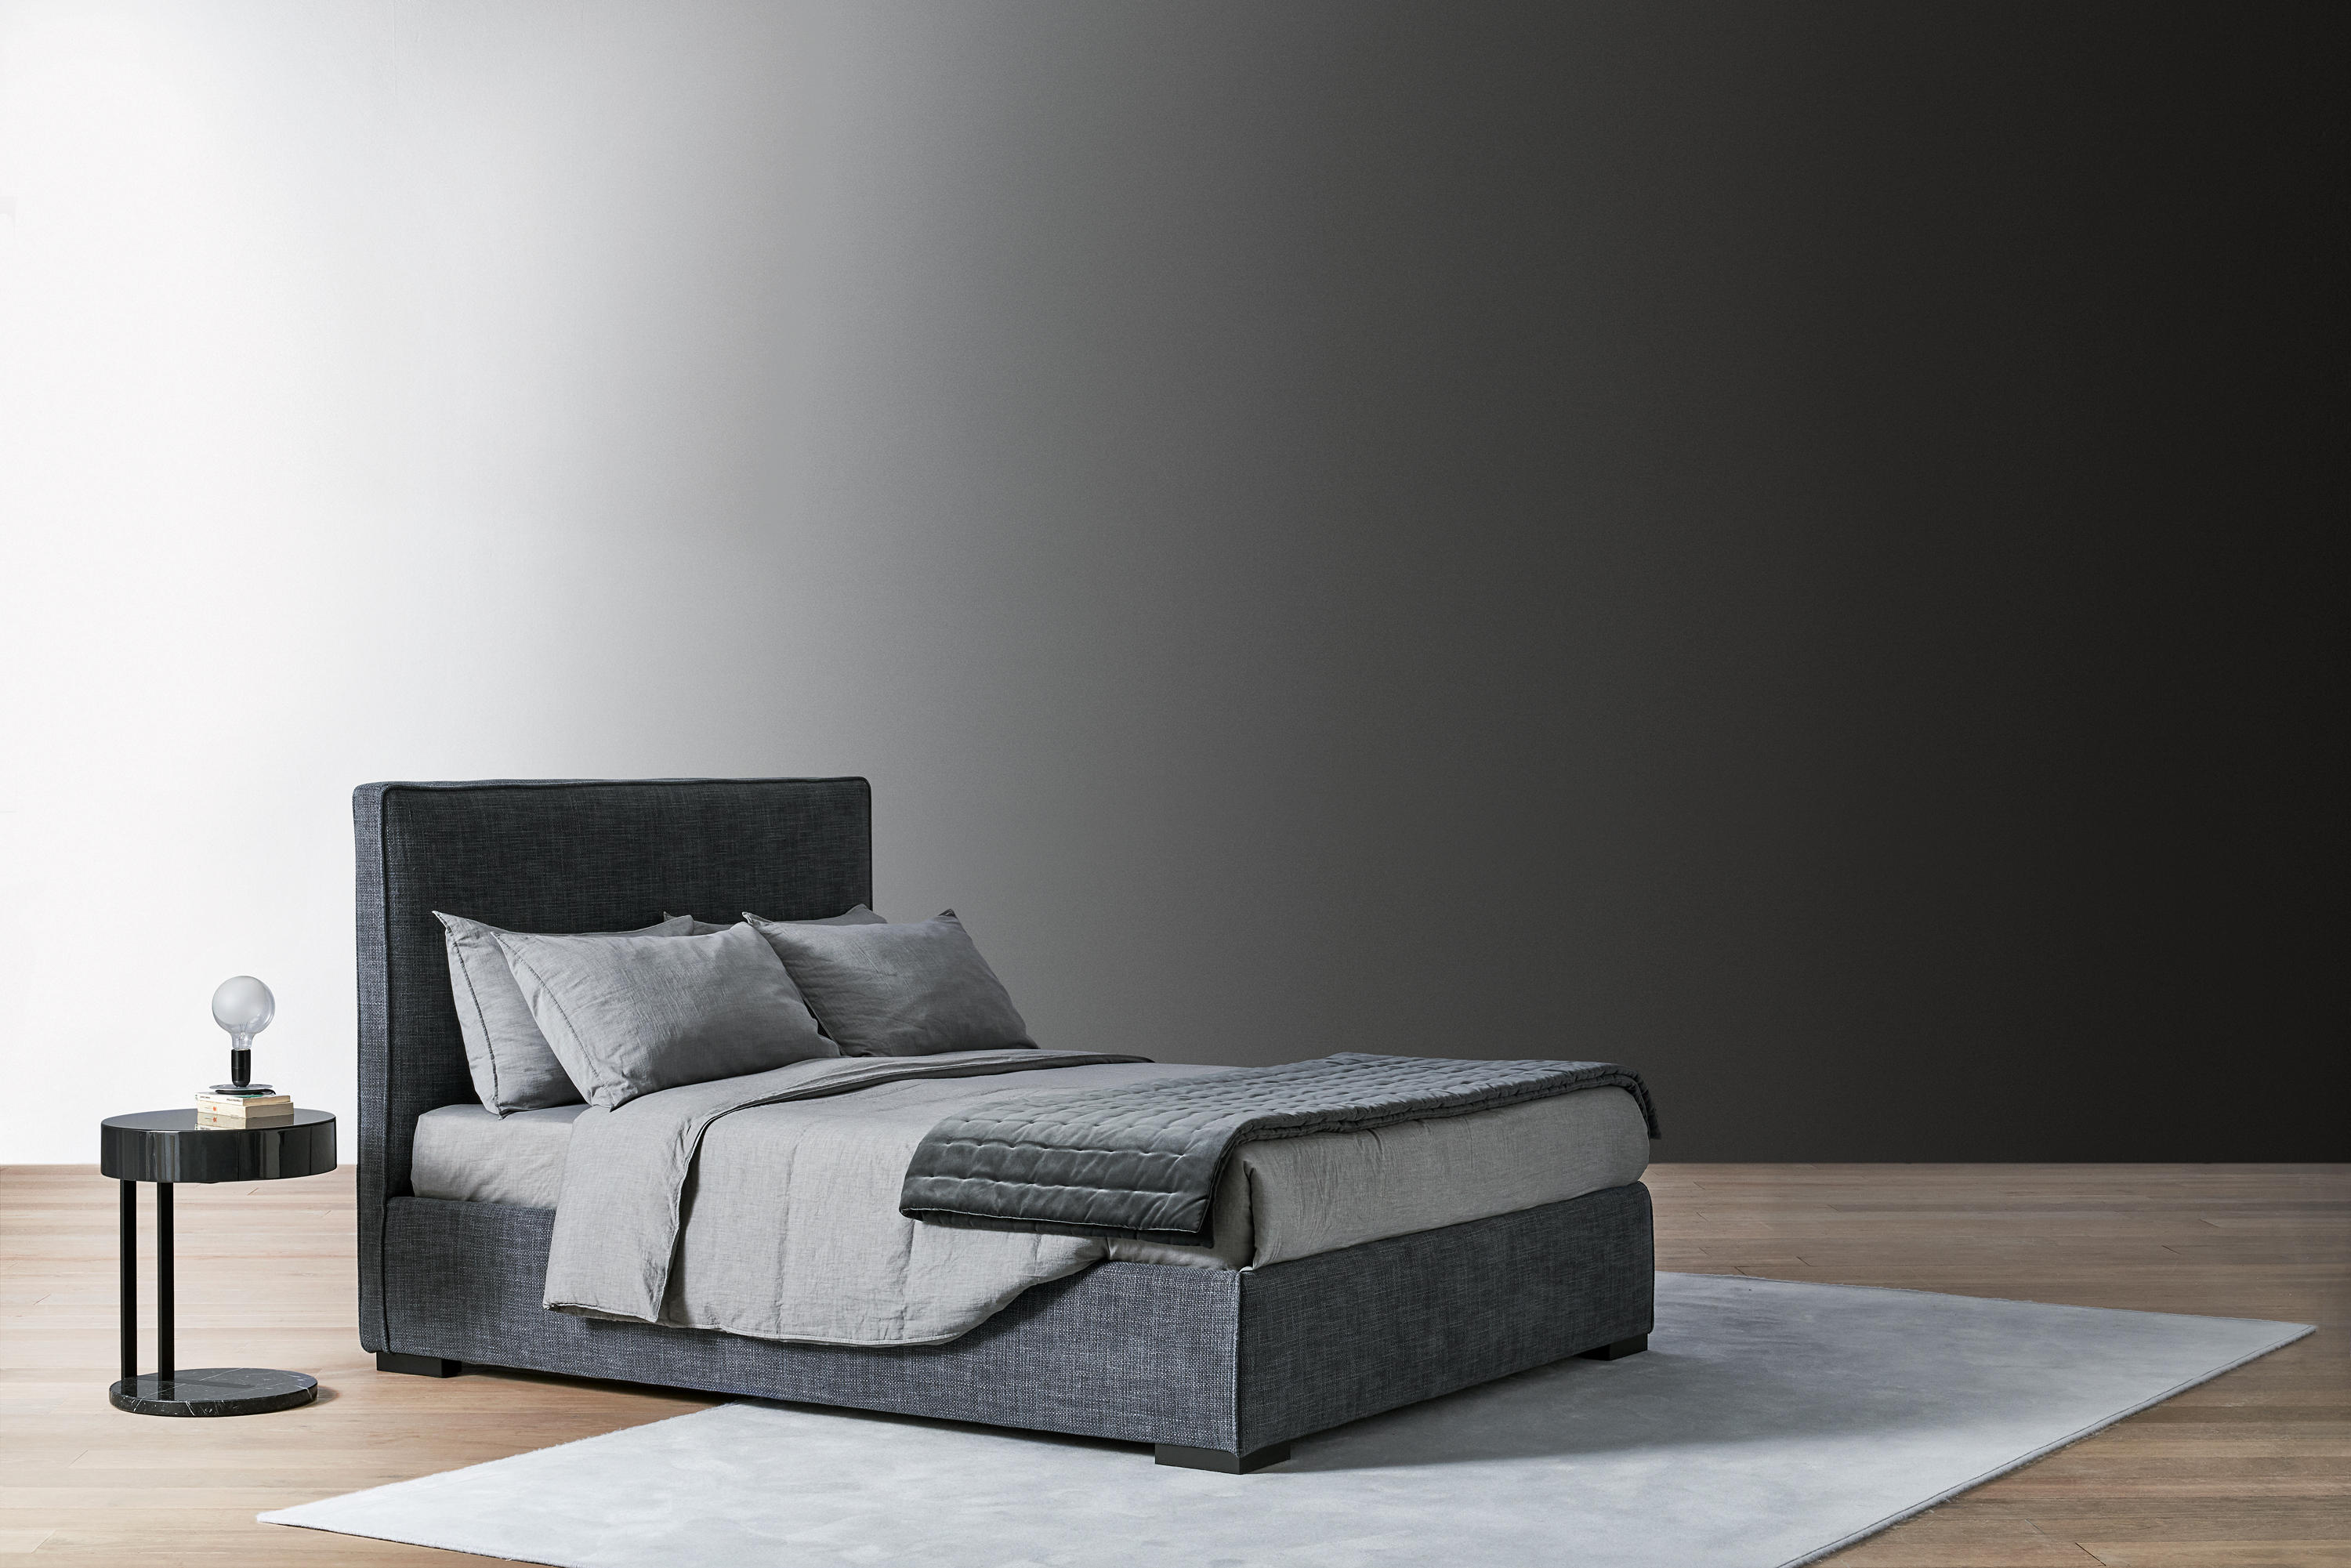 Wandpaneel Bett Stone Bett Betten Von Meridiani Architonic